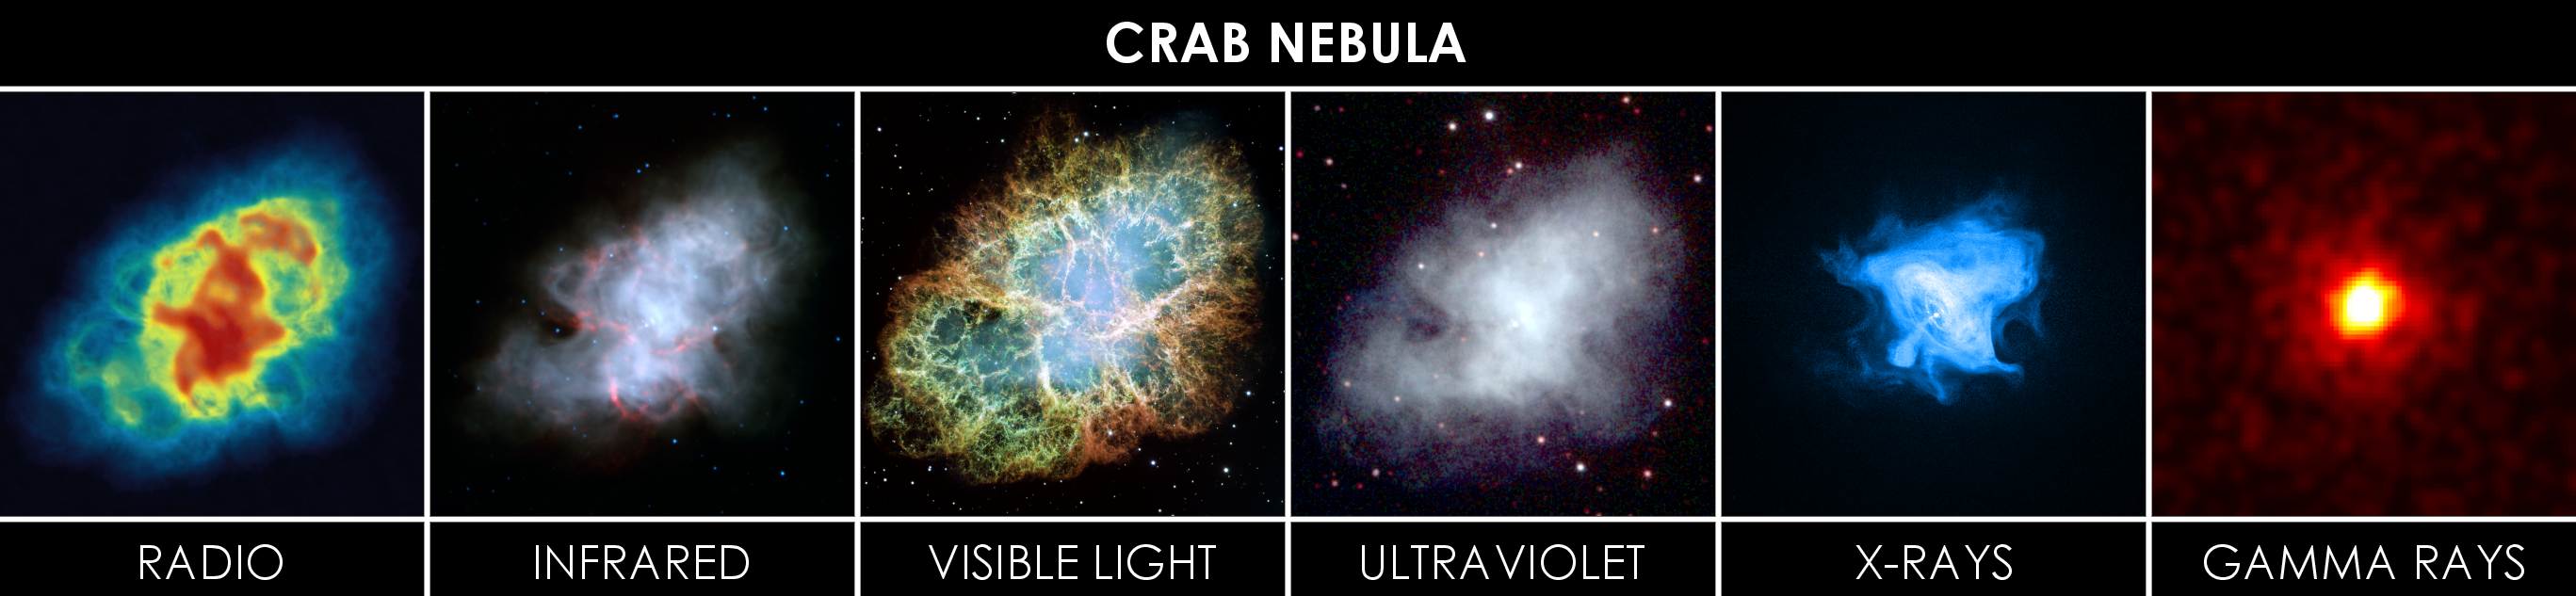 Crab_Nebula_in_Multiple_Wavelengths